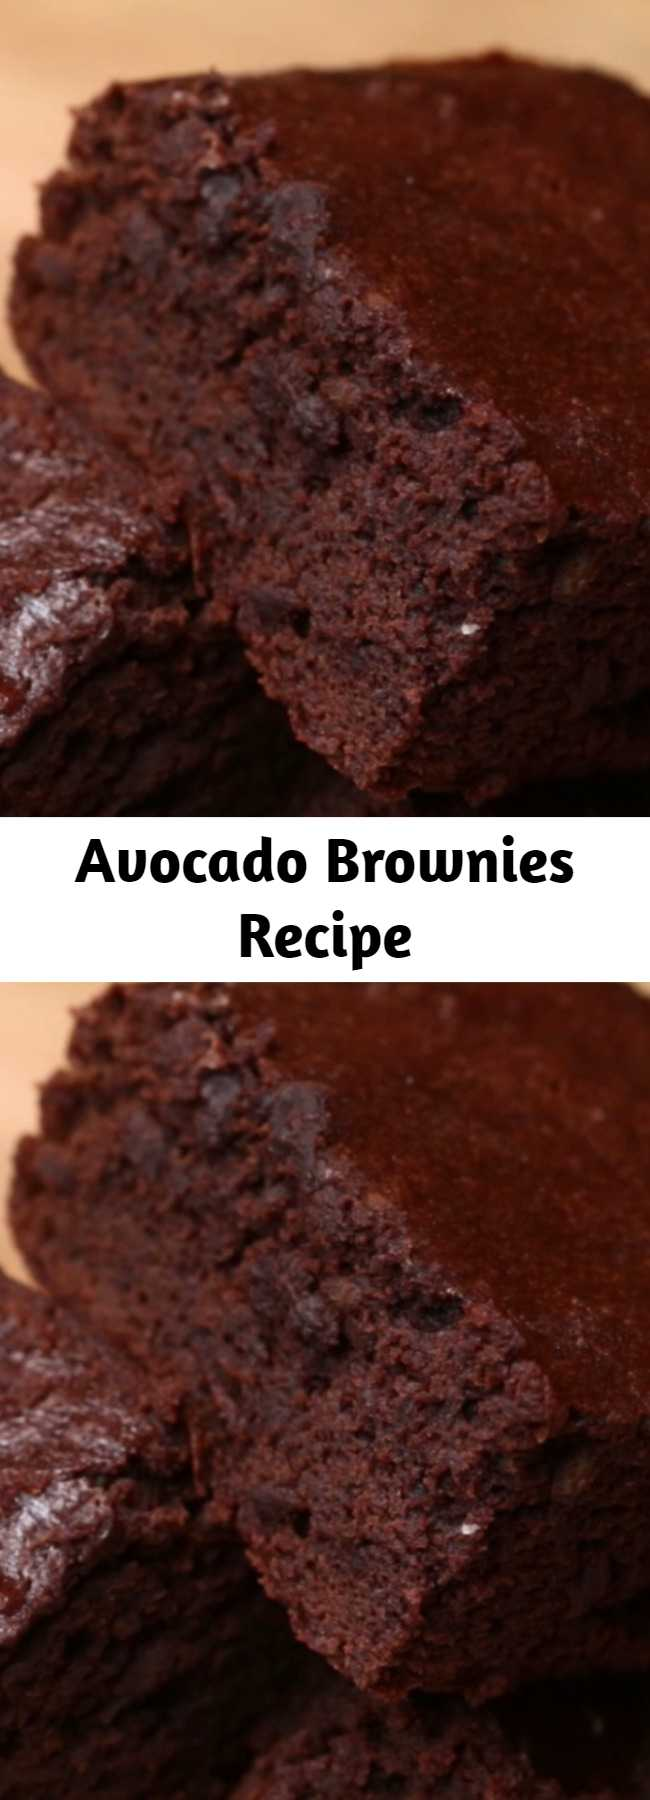 Avocado Brownies Recipe - They're pretty decent healthy brownies! They've got a good fudgy texture and most people thought the taste was pretty good too. Apparently you can swap butter with avocado and still get delicious, healthier brownies!